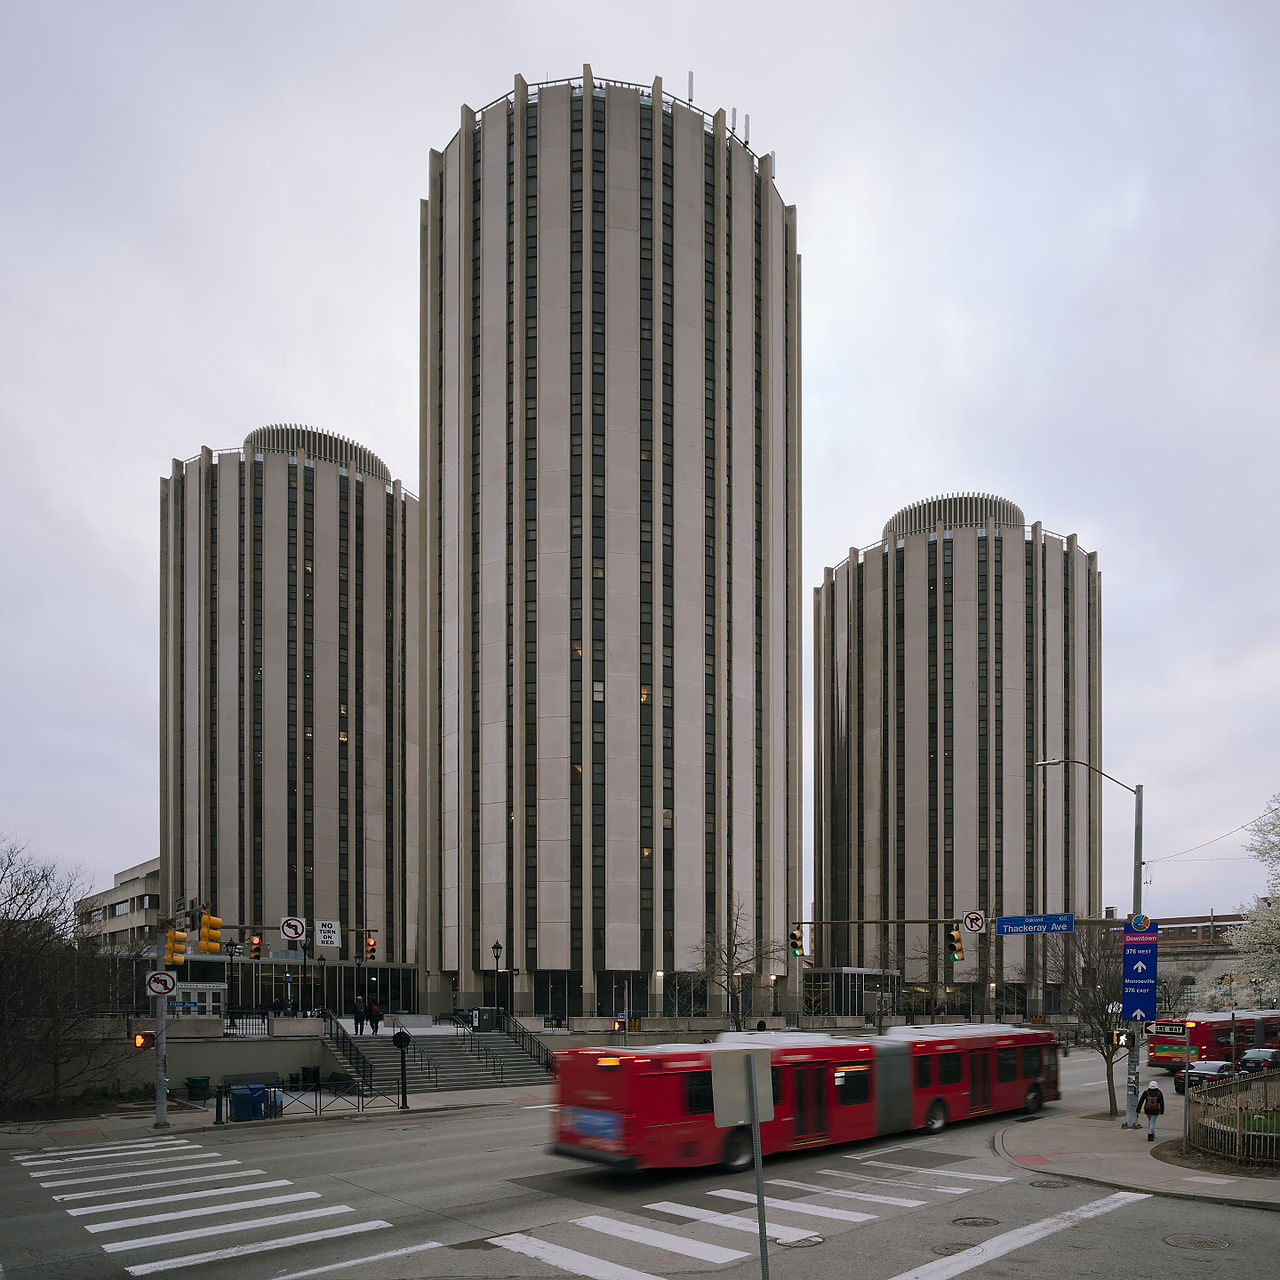 Litchfield Towers designed by Deeter and Richtey, 1963